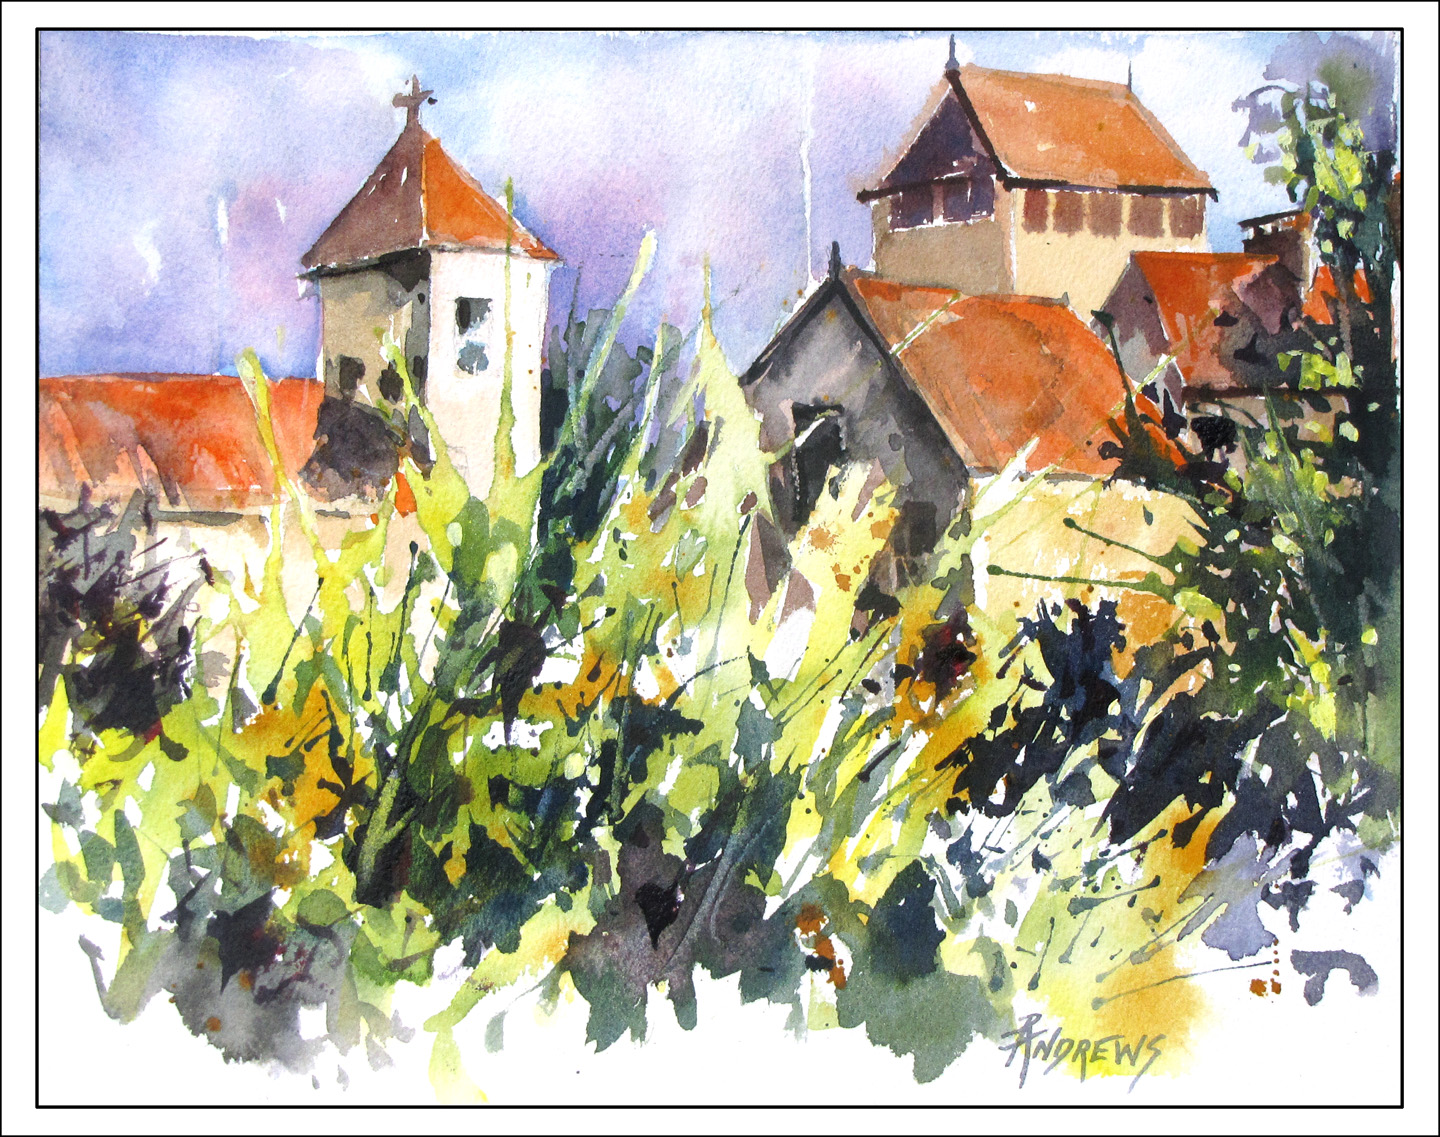 Watercolor artist in texas - Just A Small Watercolor Study Of The Village Of Frayssinet In France This Is The Area We Will Be Going In May For My Pastel Watercolor Workshop What Fun